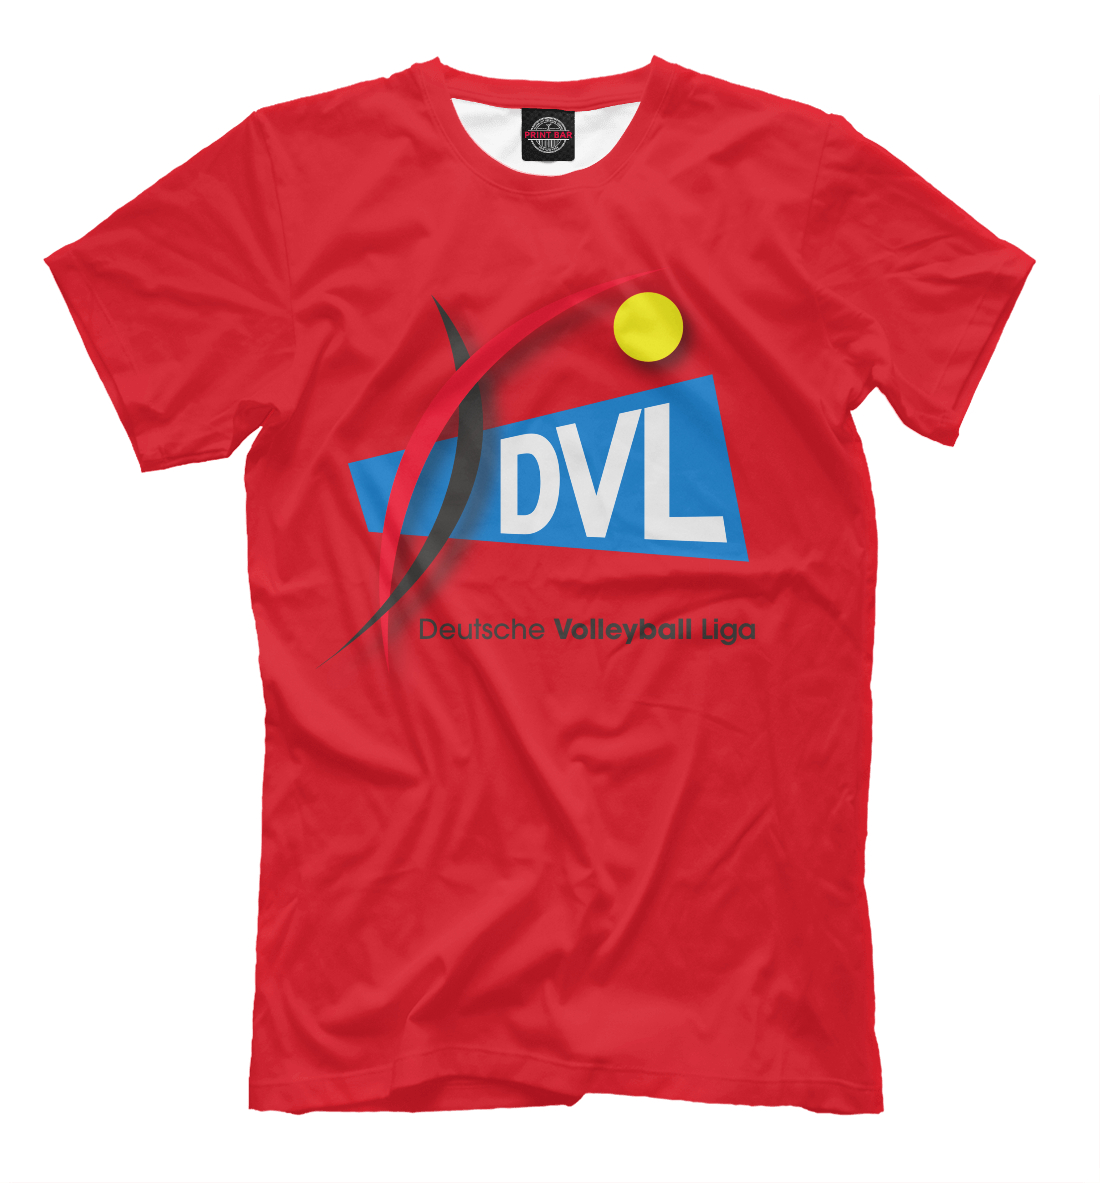 Купить DVL (Deutsche volleyball Liga), Printbar, Футболки, VLB-396096-fut-2